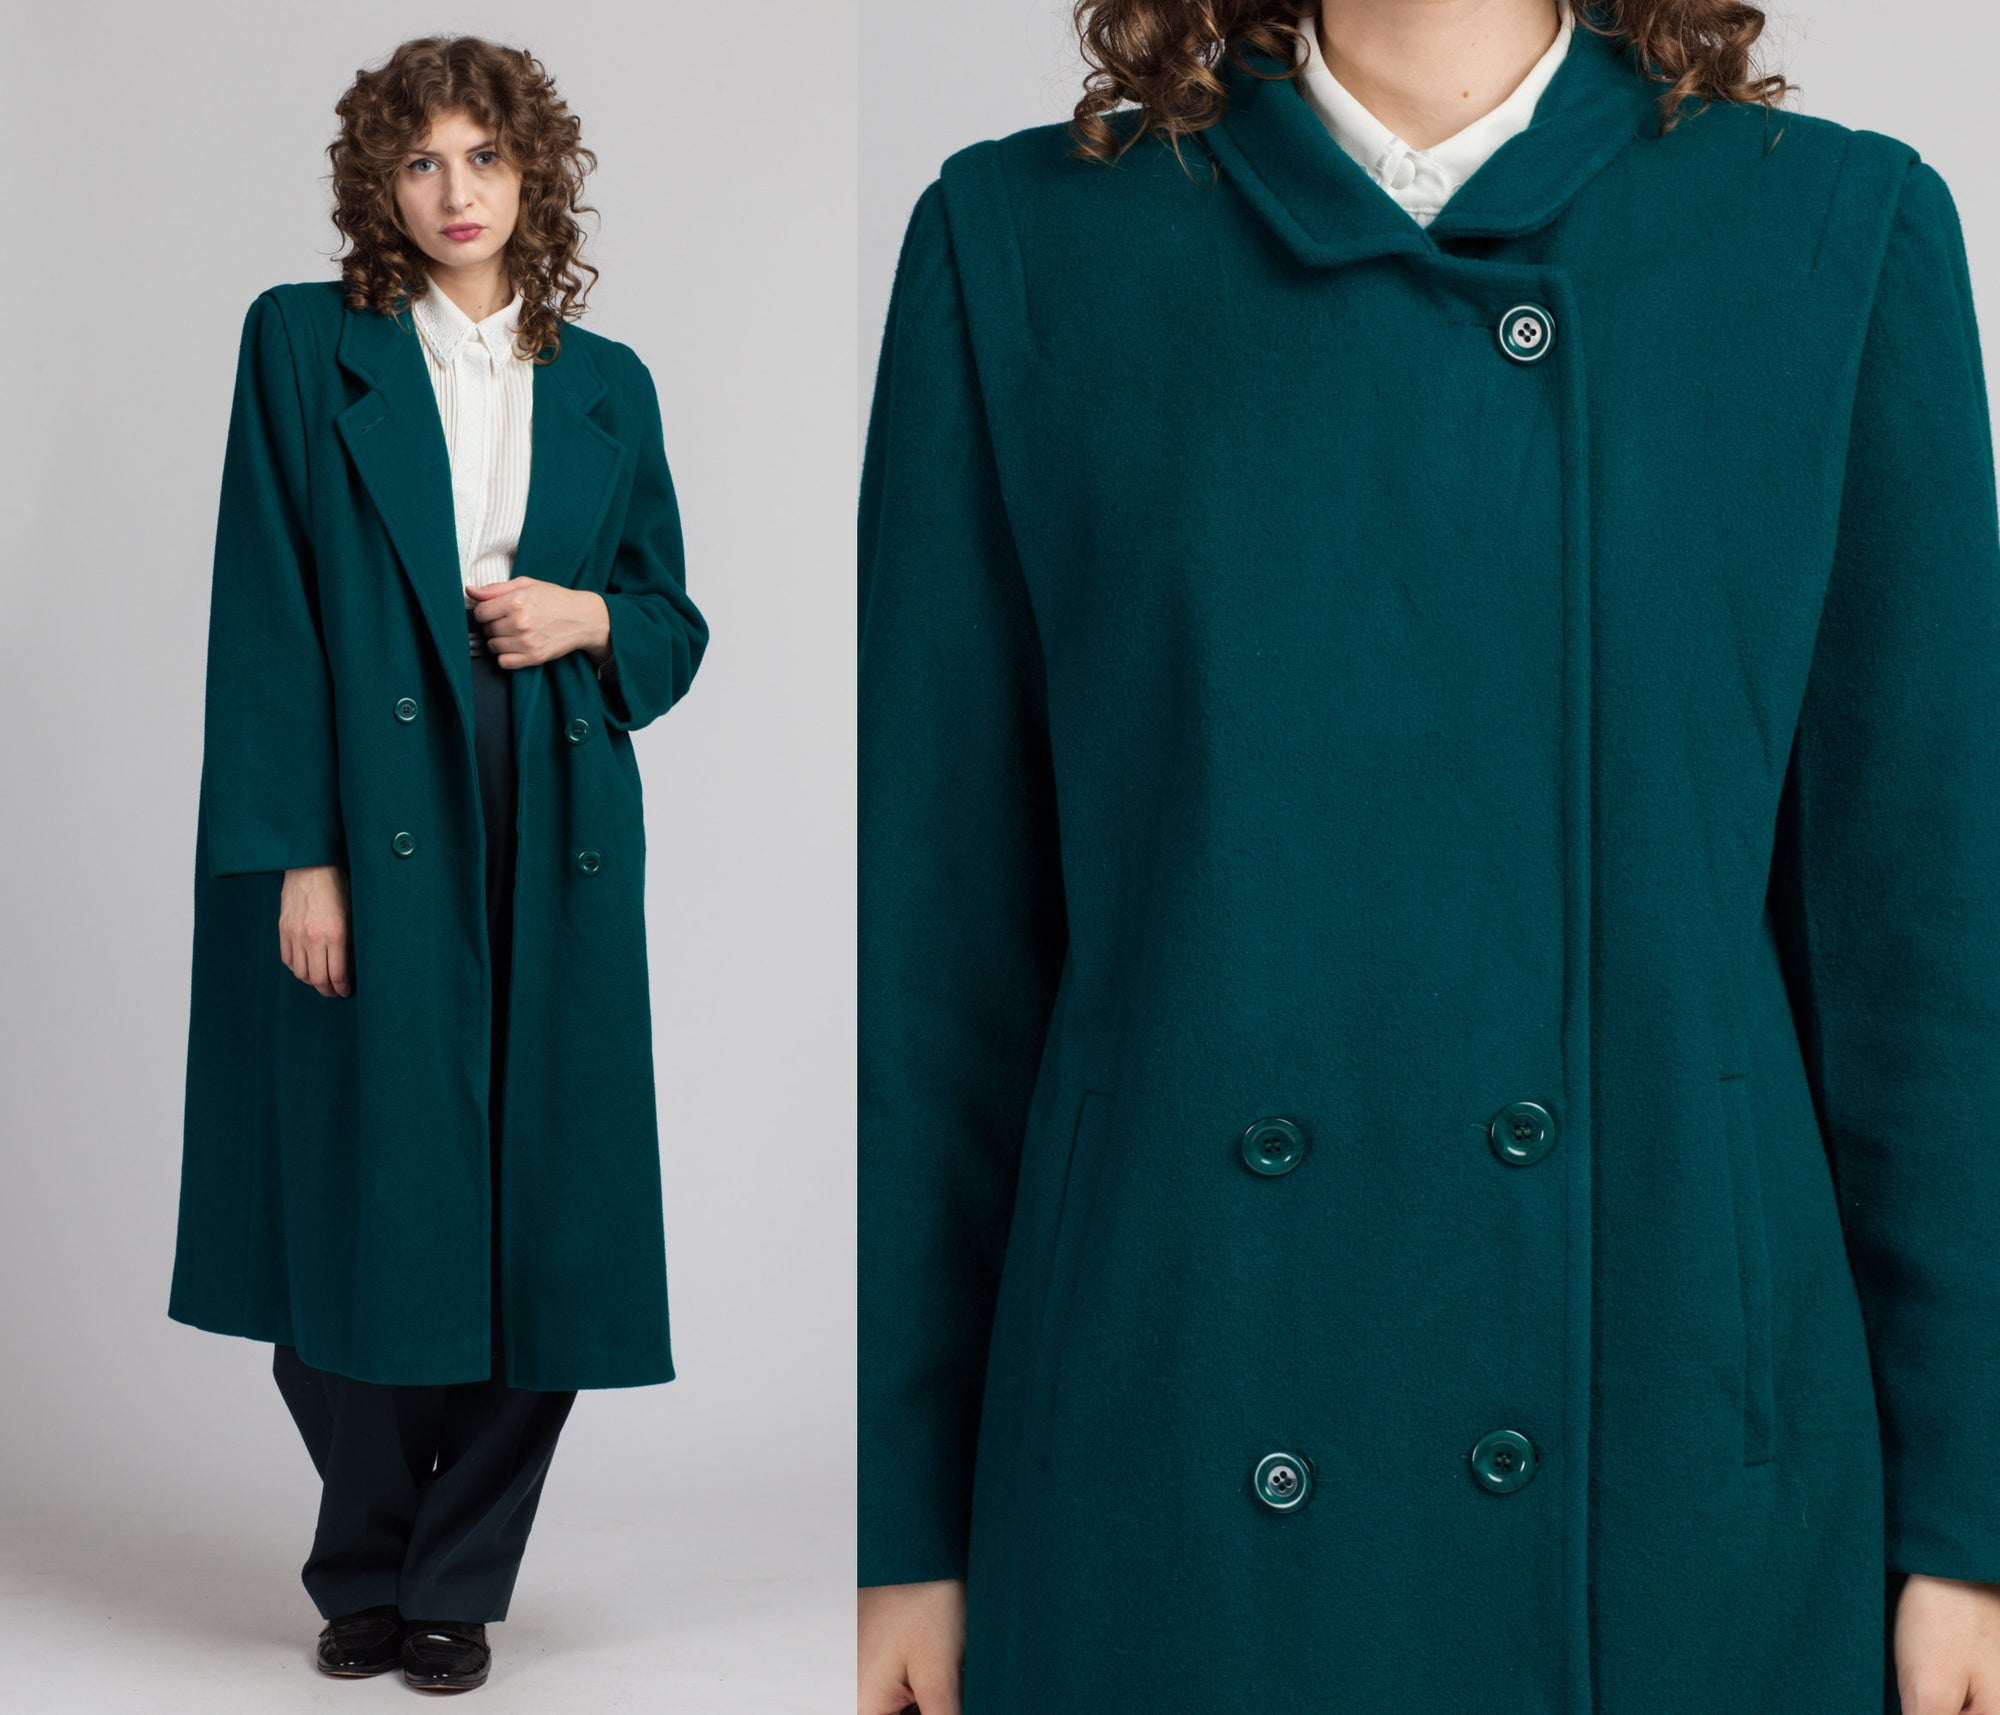 Vintage Emerald Green Wool Overcoat - Large